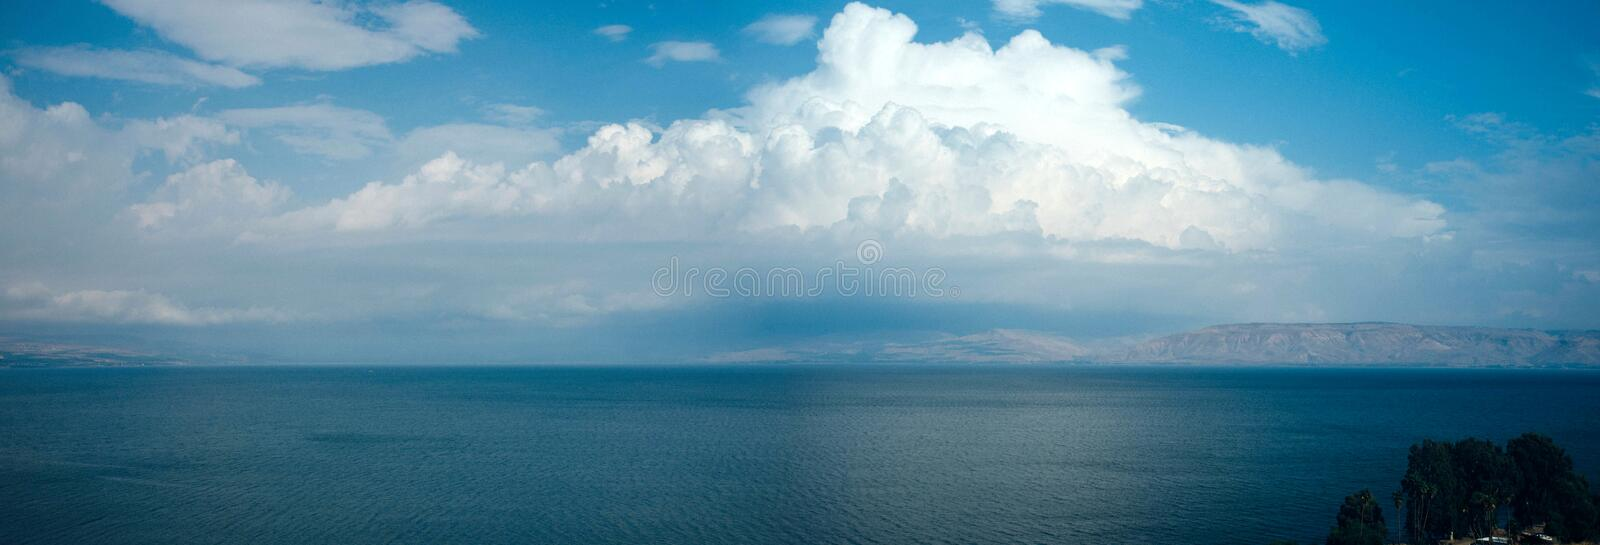 Holy land Series - Sea of Galilee#1 stock images